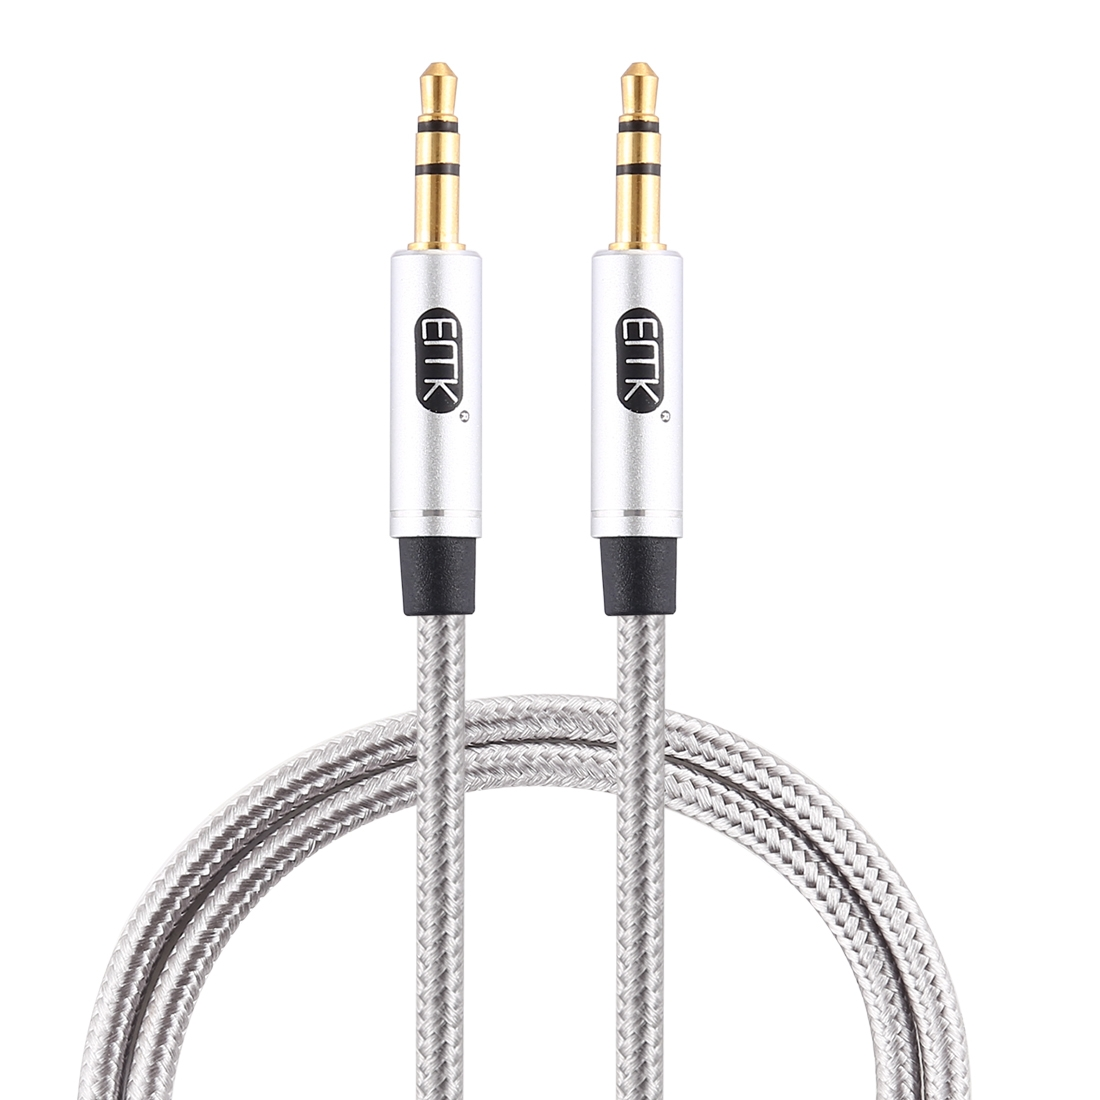 EMK 3.5mm Male to Male Gold-plated Plug Cotton Braided Audio Cable for Speaker / Notebooks / Headphone, Length: 1m (Grey)